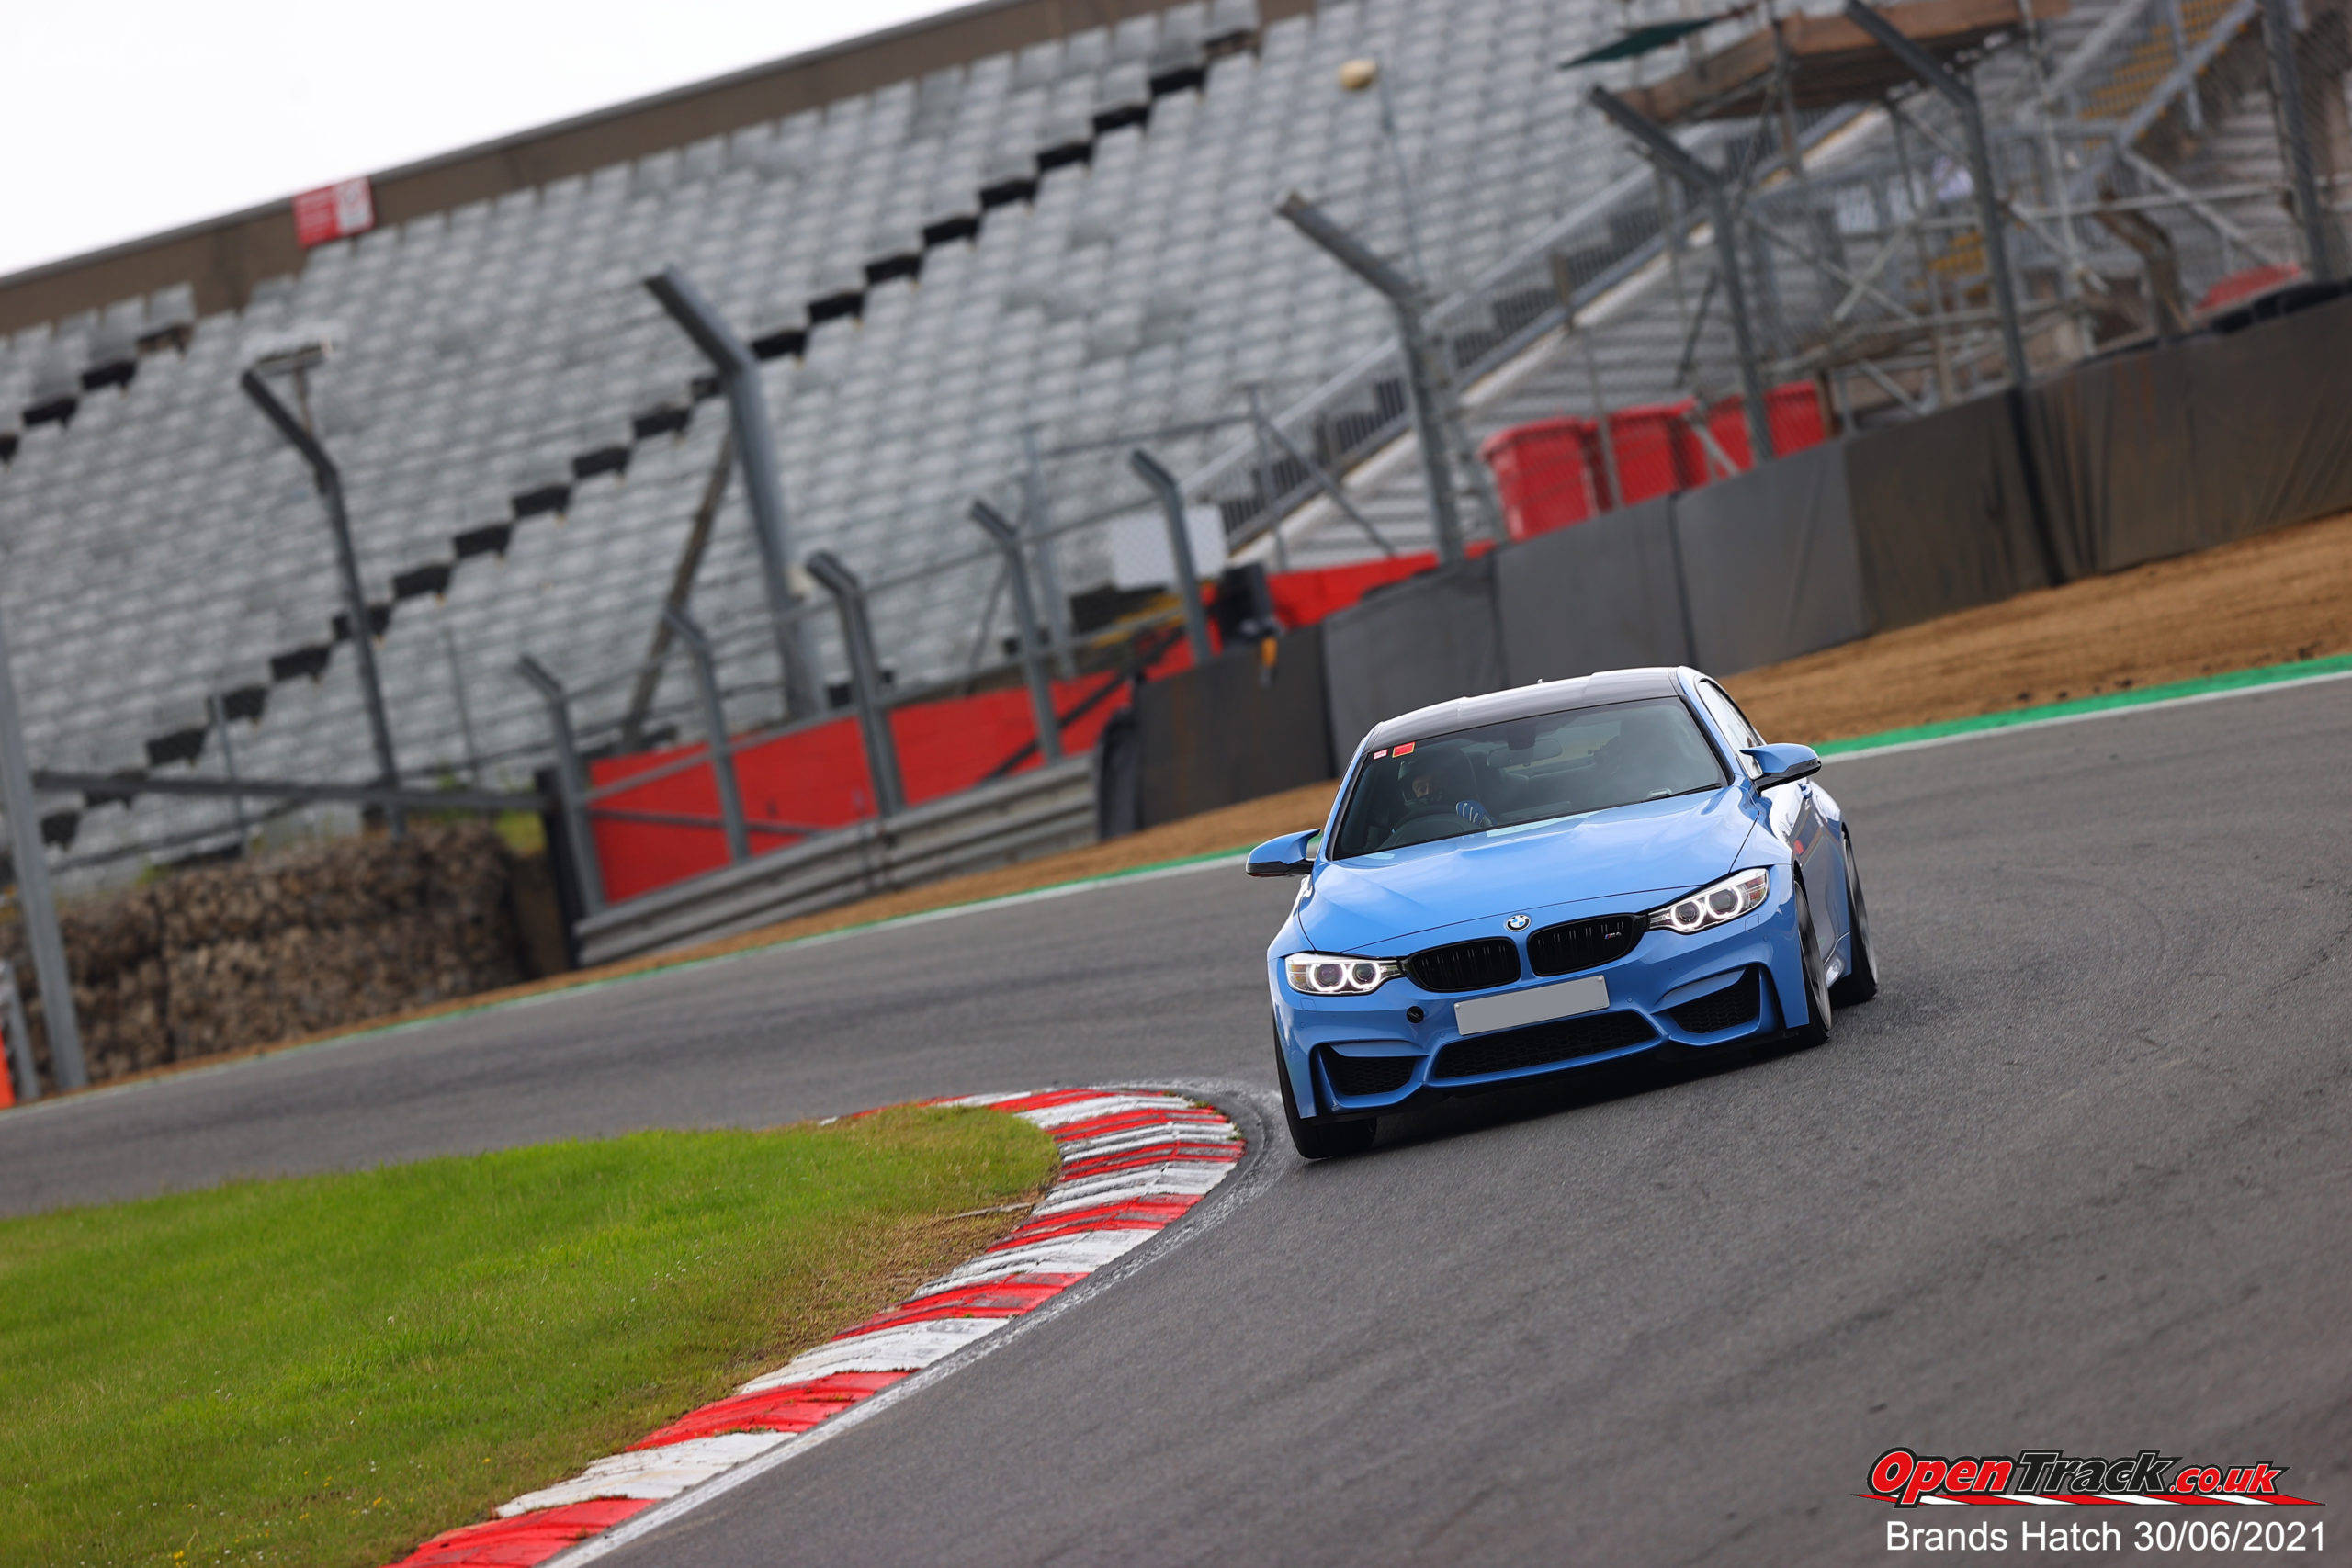 BMW M4 Owner Tests RP-X Pads at Brands Hatch Track Day